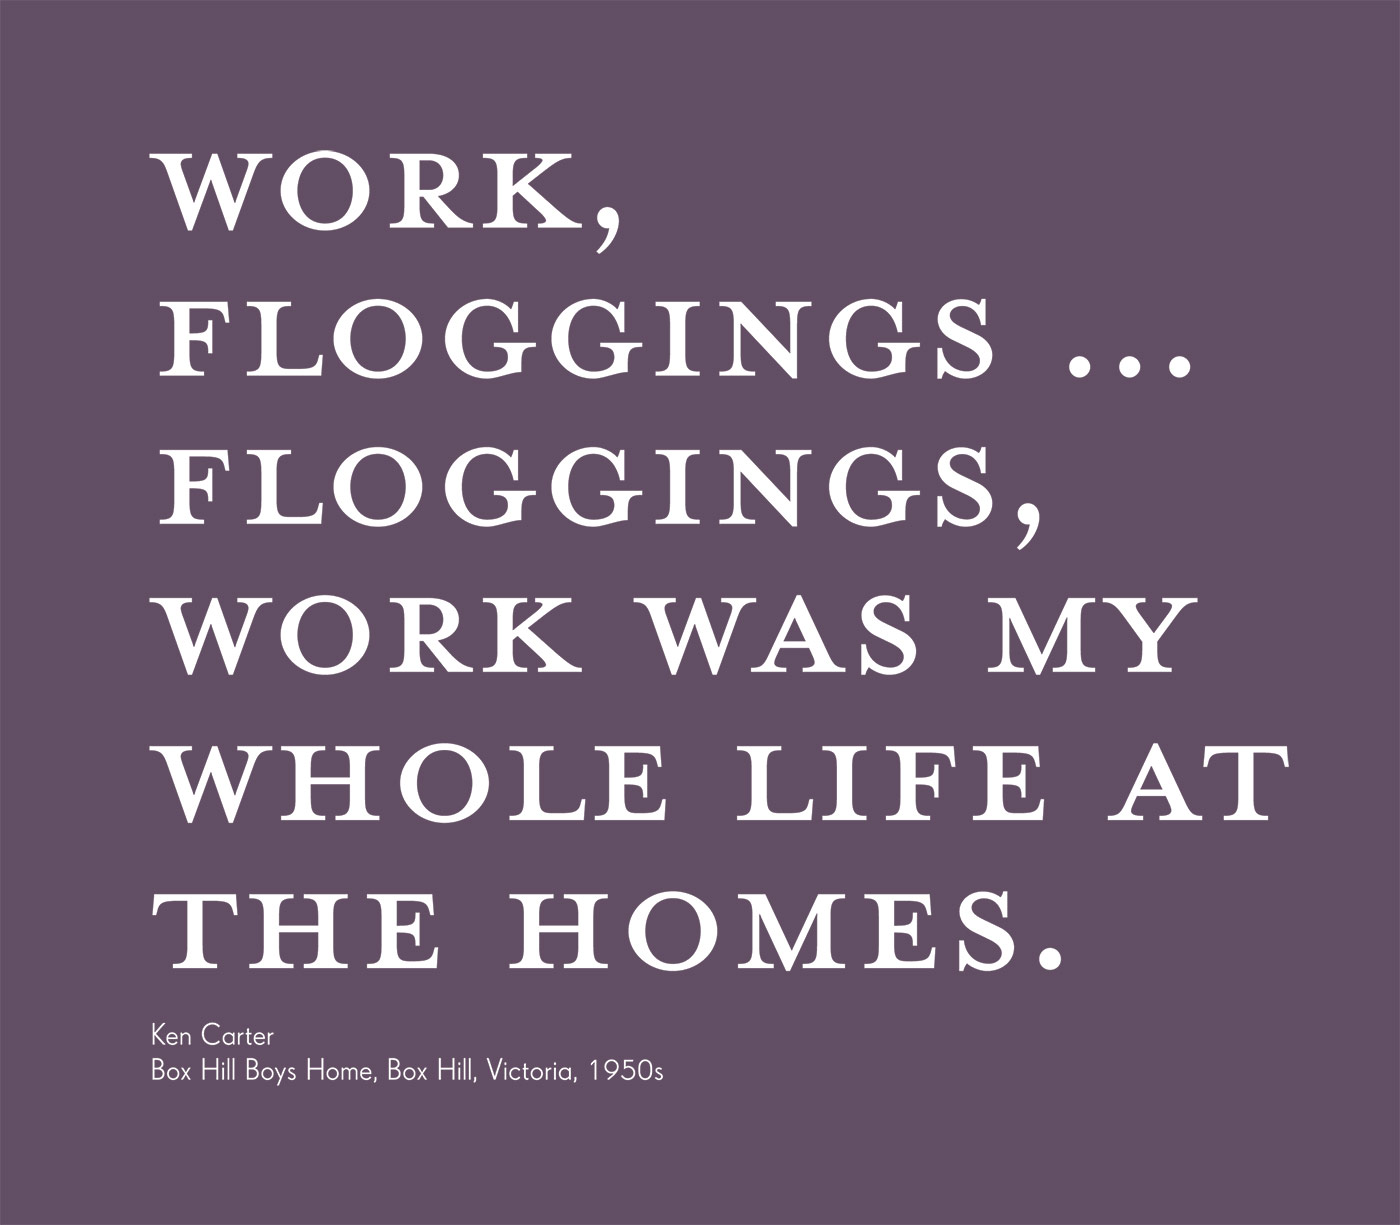 Exhibition graphic panel that reads: 'WORK, FLOGGINGS … FLOGGINGS, WORK was my whole life at the homes', attributed to 'Ken Carter, Box Hill Boys Home, Box Hill, Victoria, 1950s'. - click to view larger image